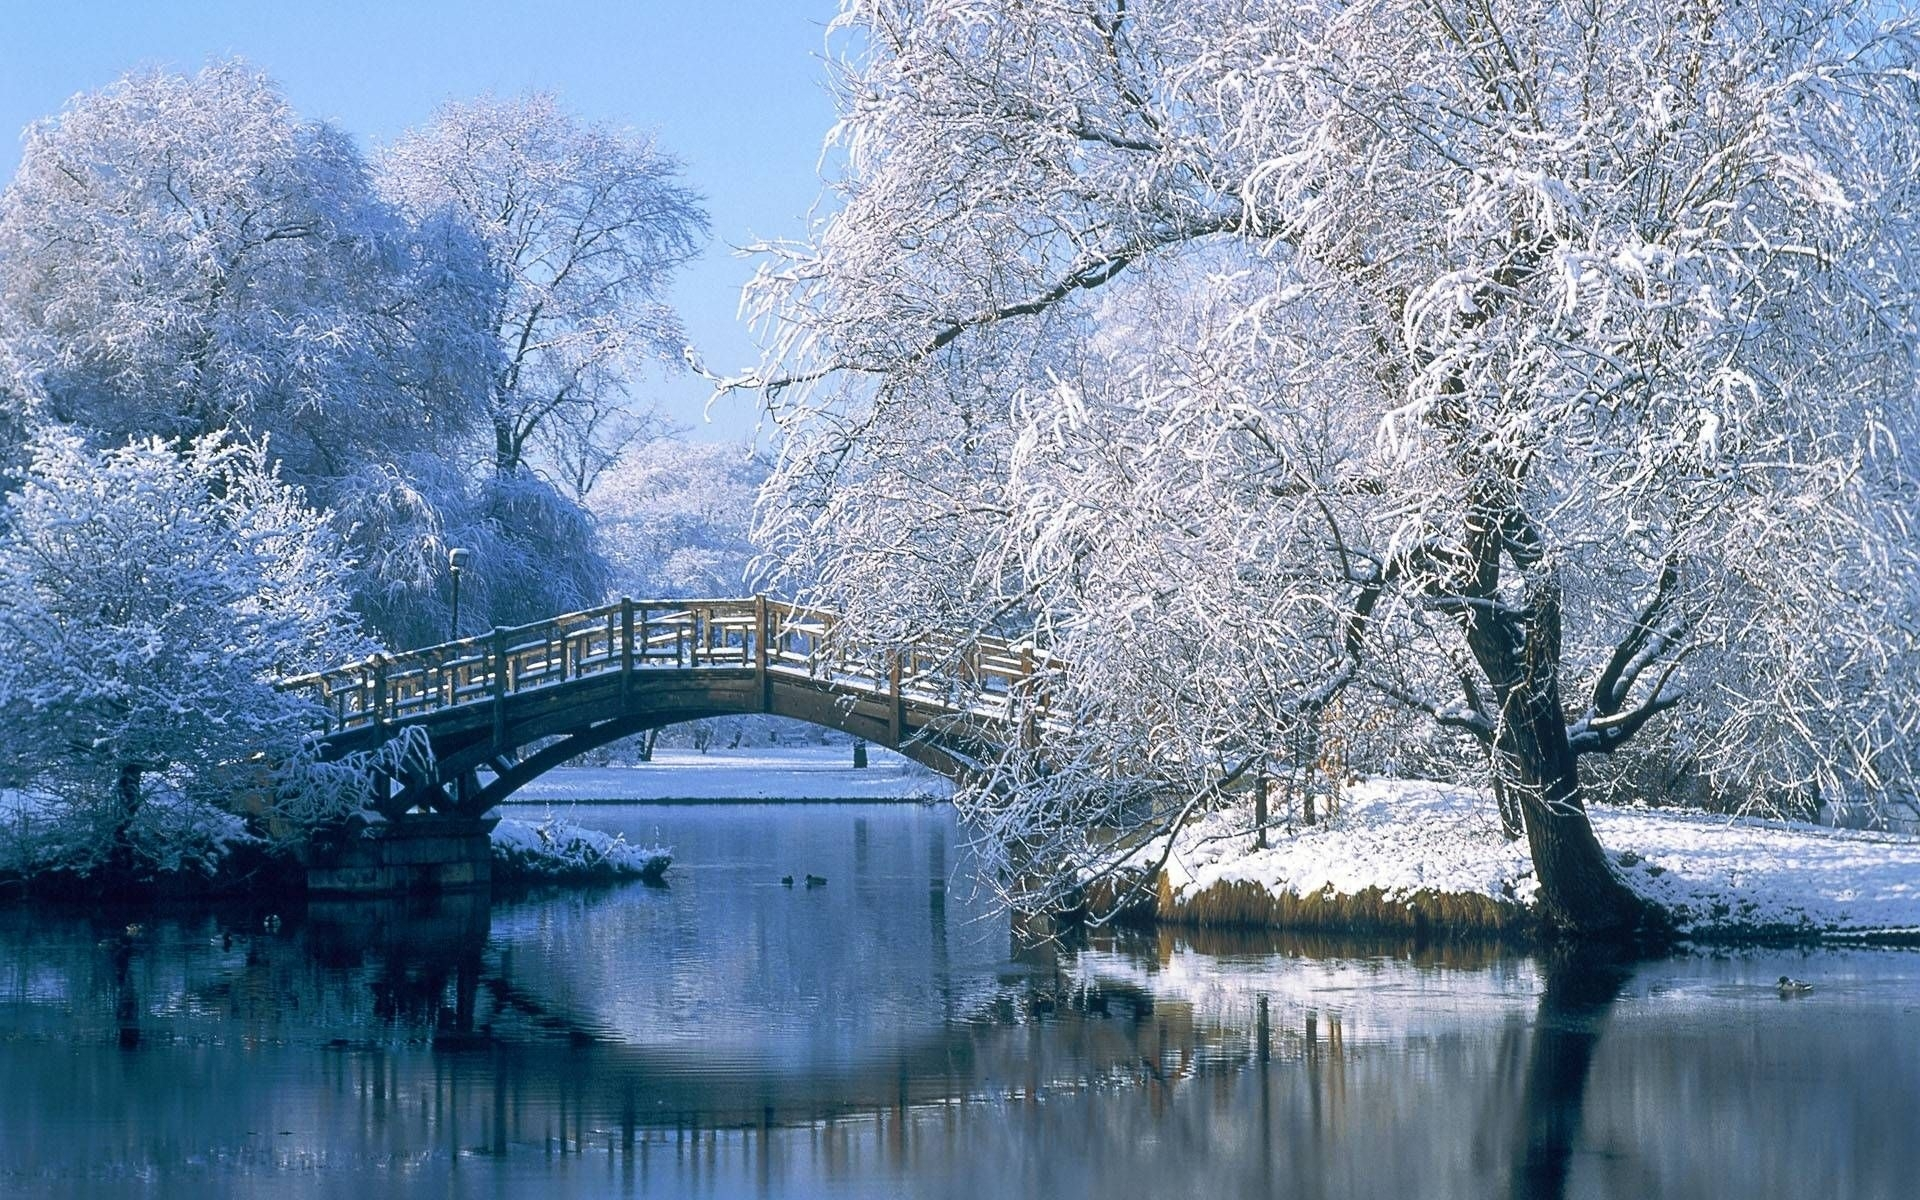 winter scenes for desktop wallpapers - hd wallpapers inn | bridges